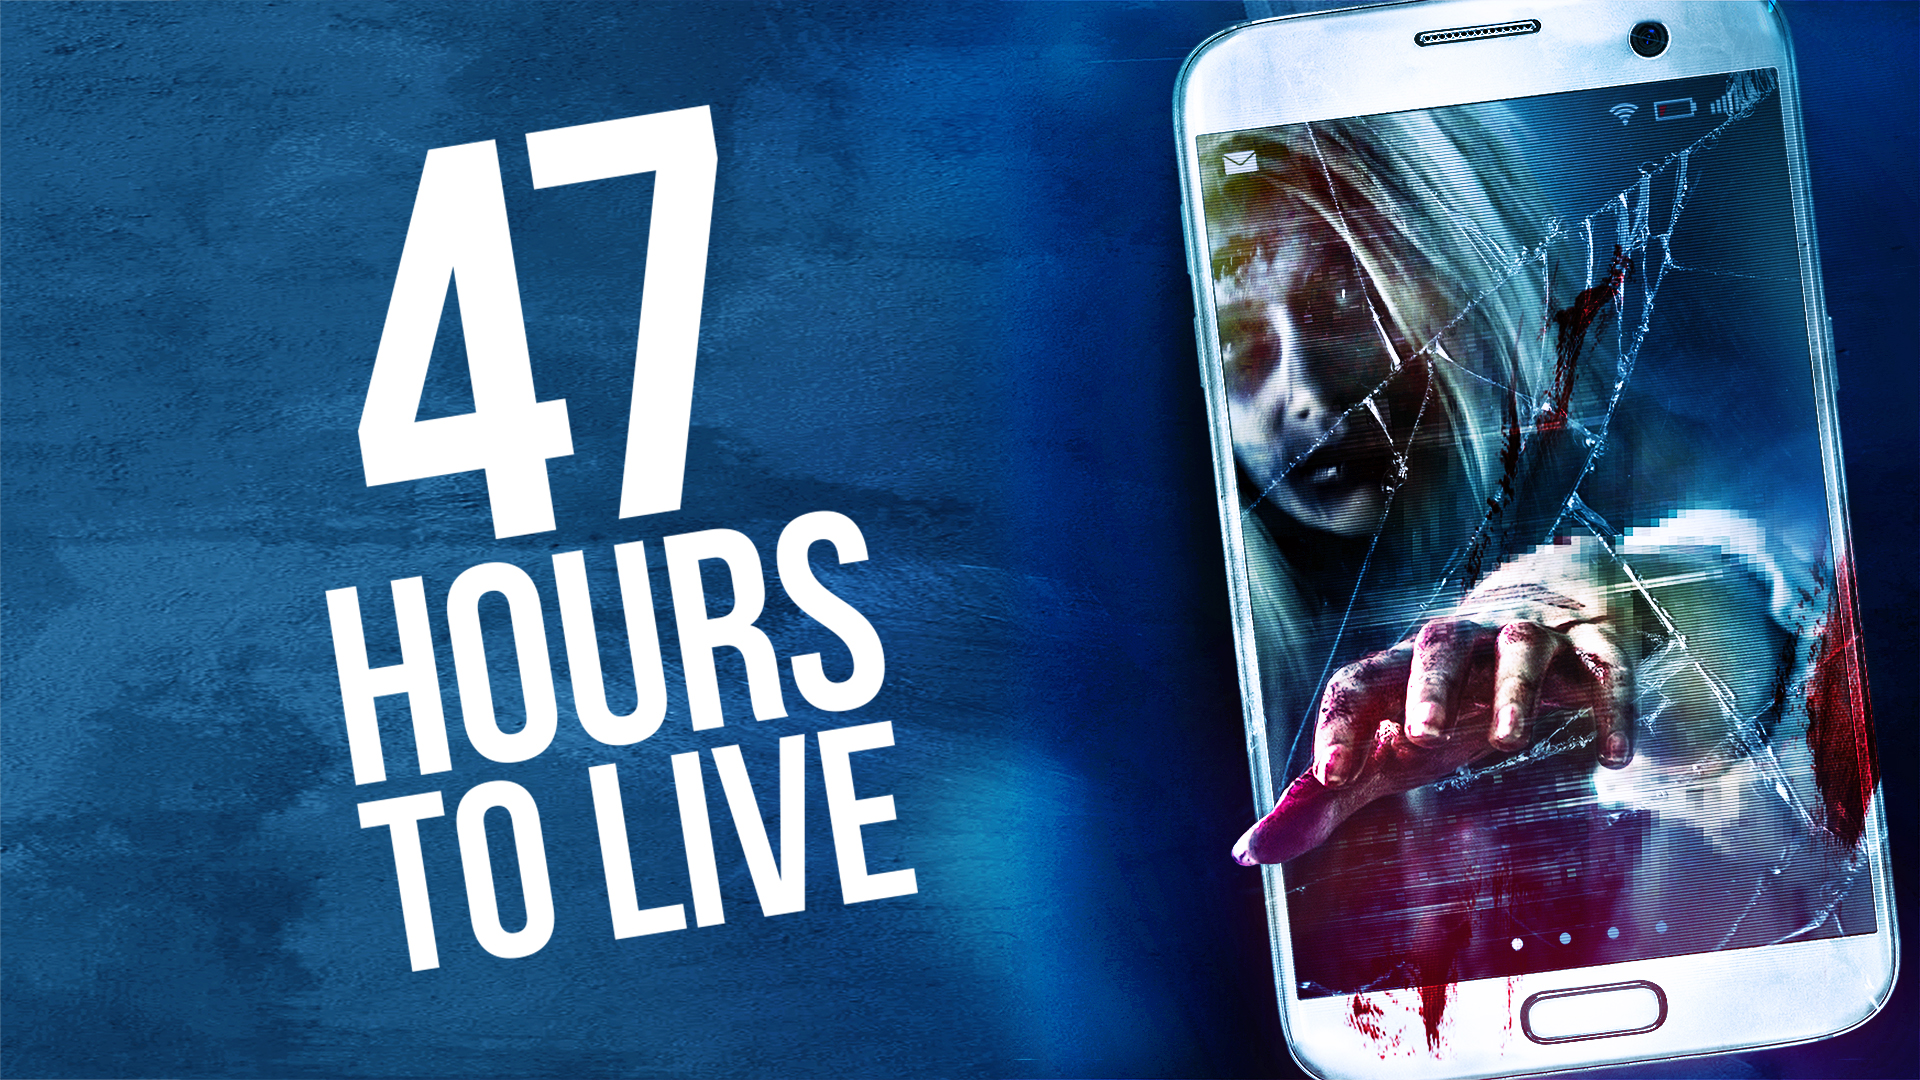 47 Hours To Live